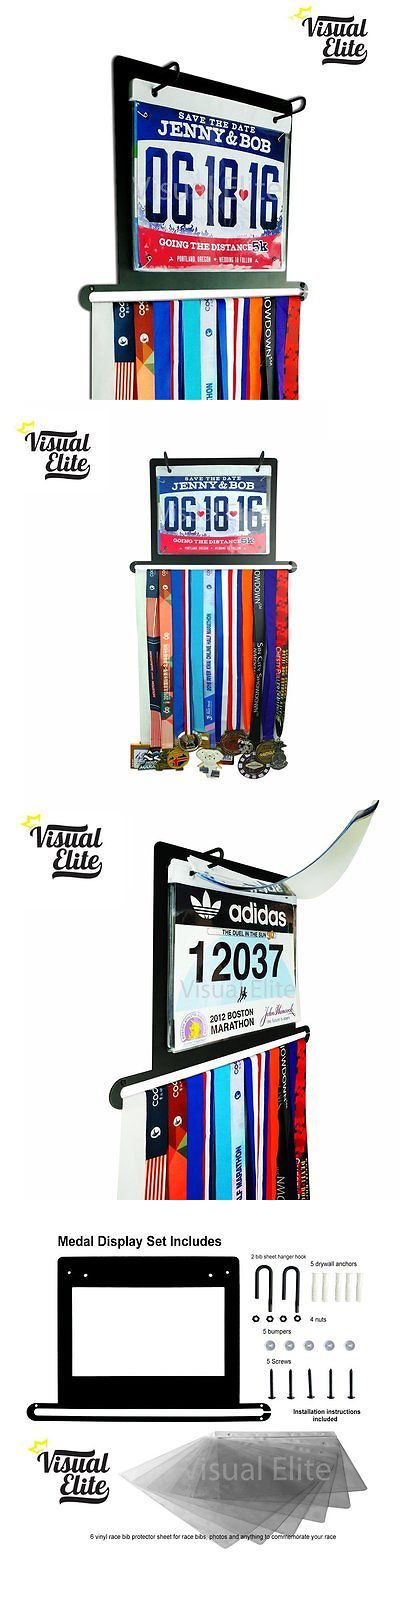 Other Fitness Clothing 158920: Visual Elite Medal And Race Bib Display. Great Ornament Piece For Running That -> BUY IT NOW ONLY: $39.96 on eBay!